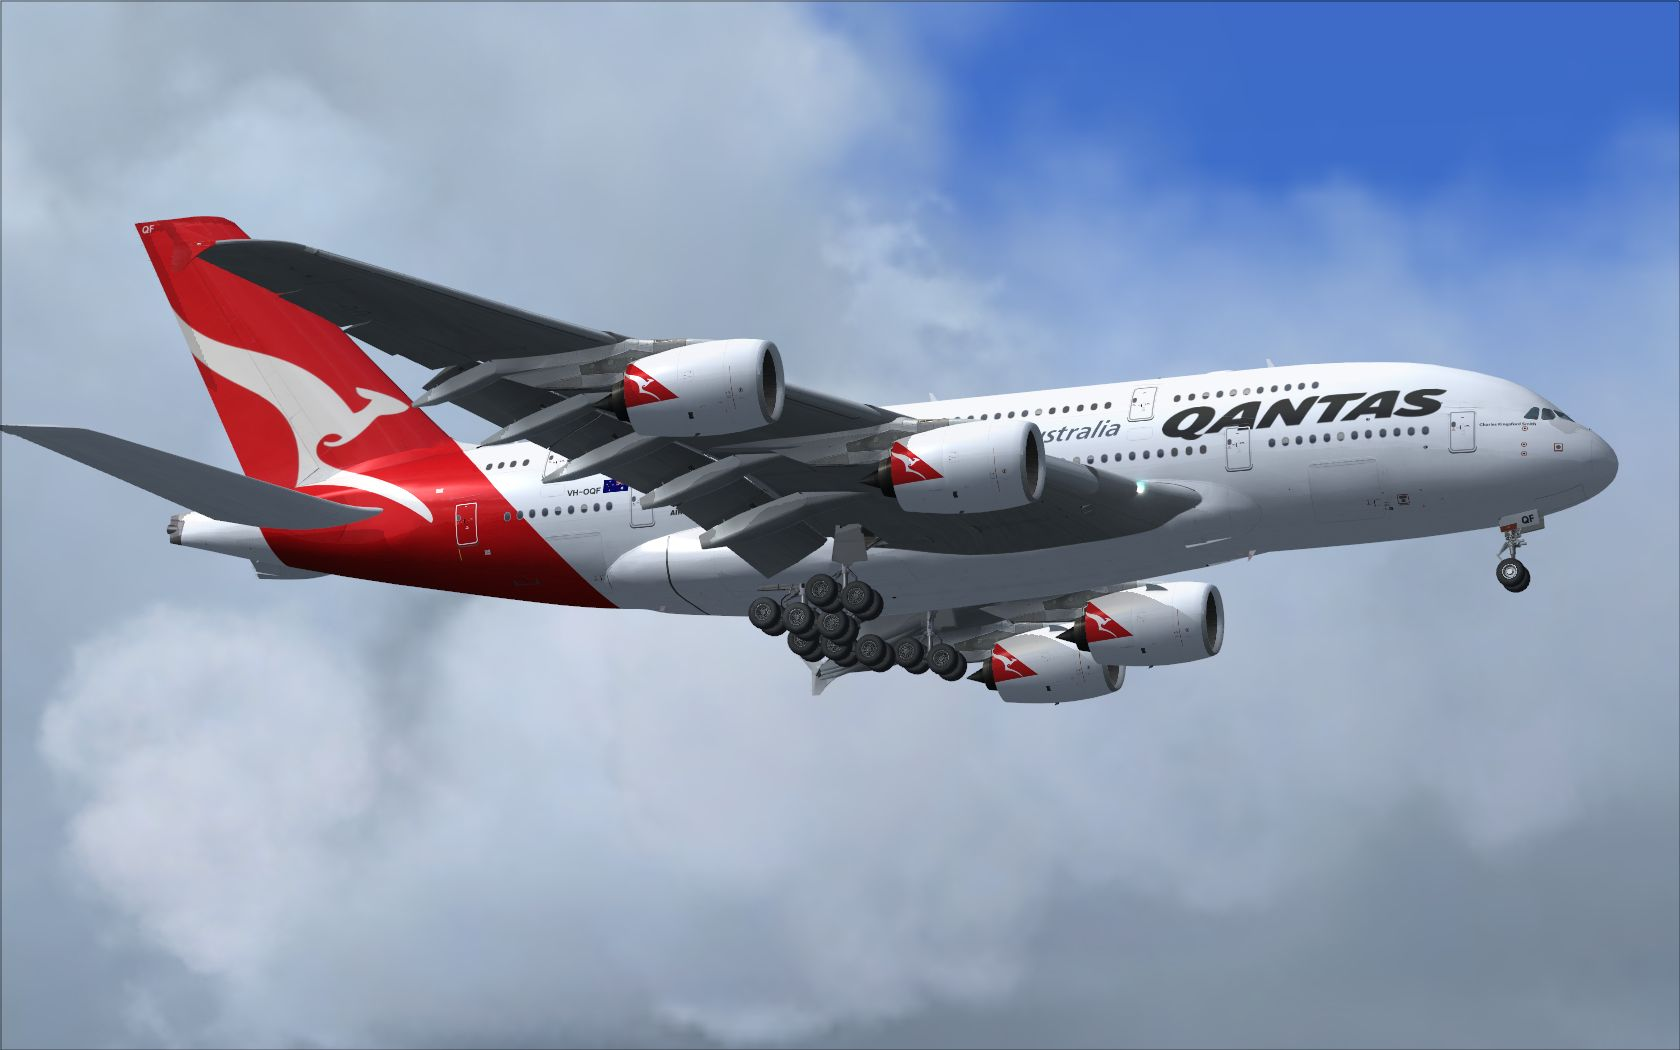 Fsx Planes Fsx: Steam Edition Released & Yes, You Can Use Freeware Addons